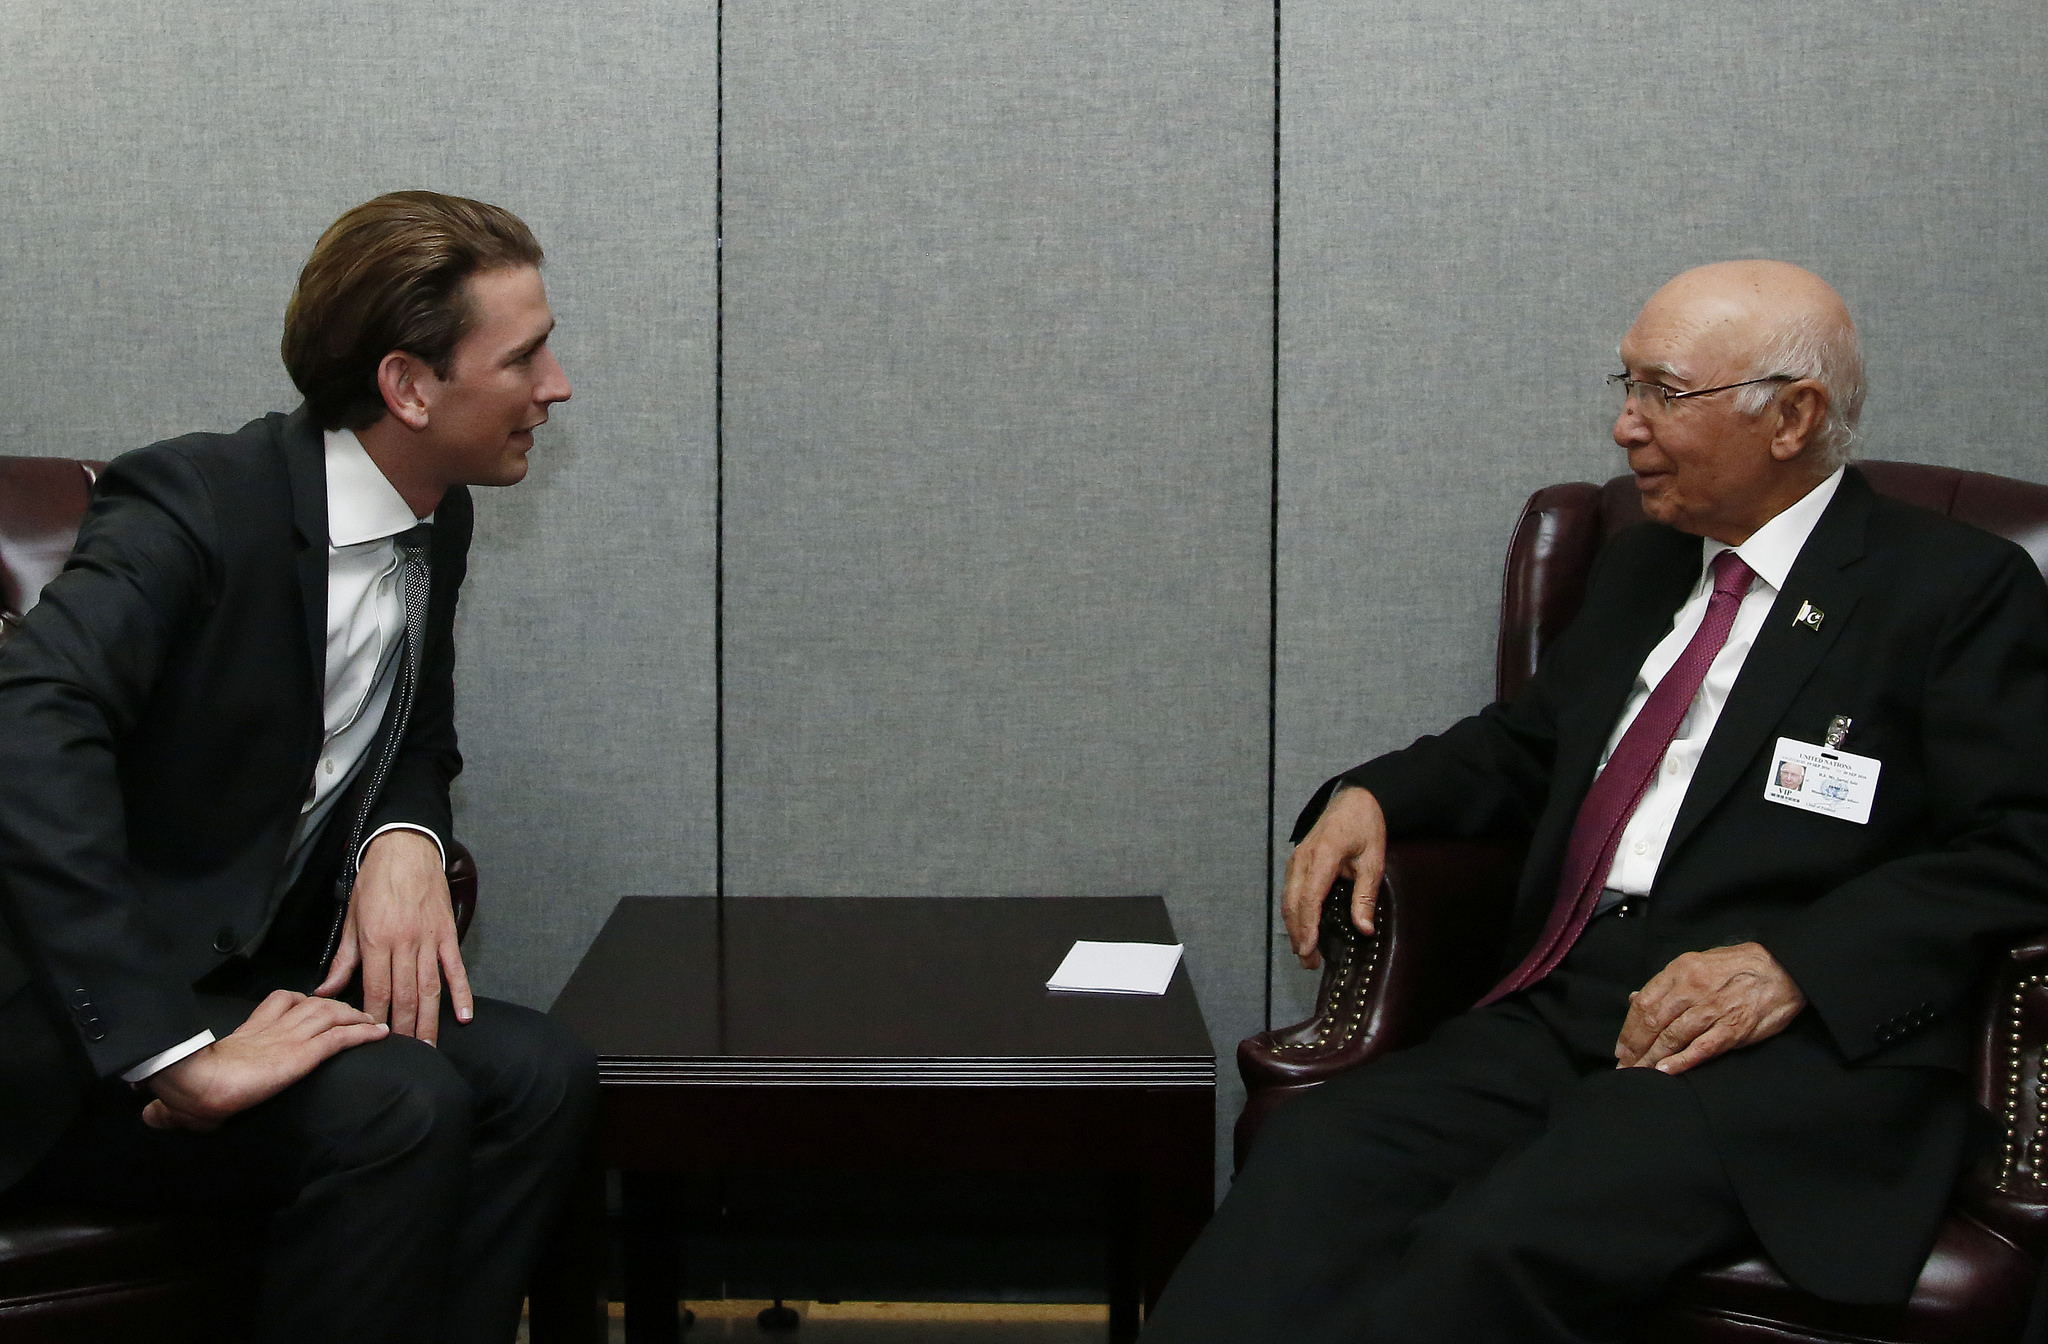 FM Kurz speaking to the foreign minister of Pakistan. Photo: Dragen Tatic